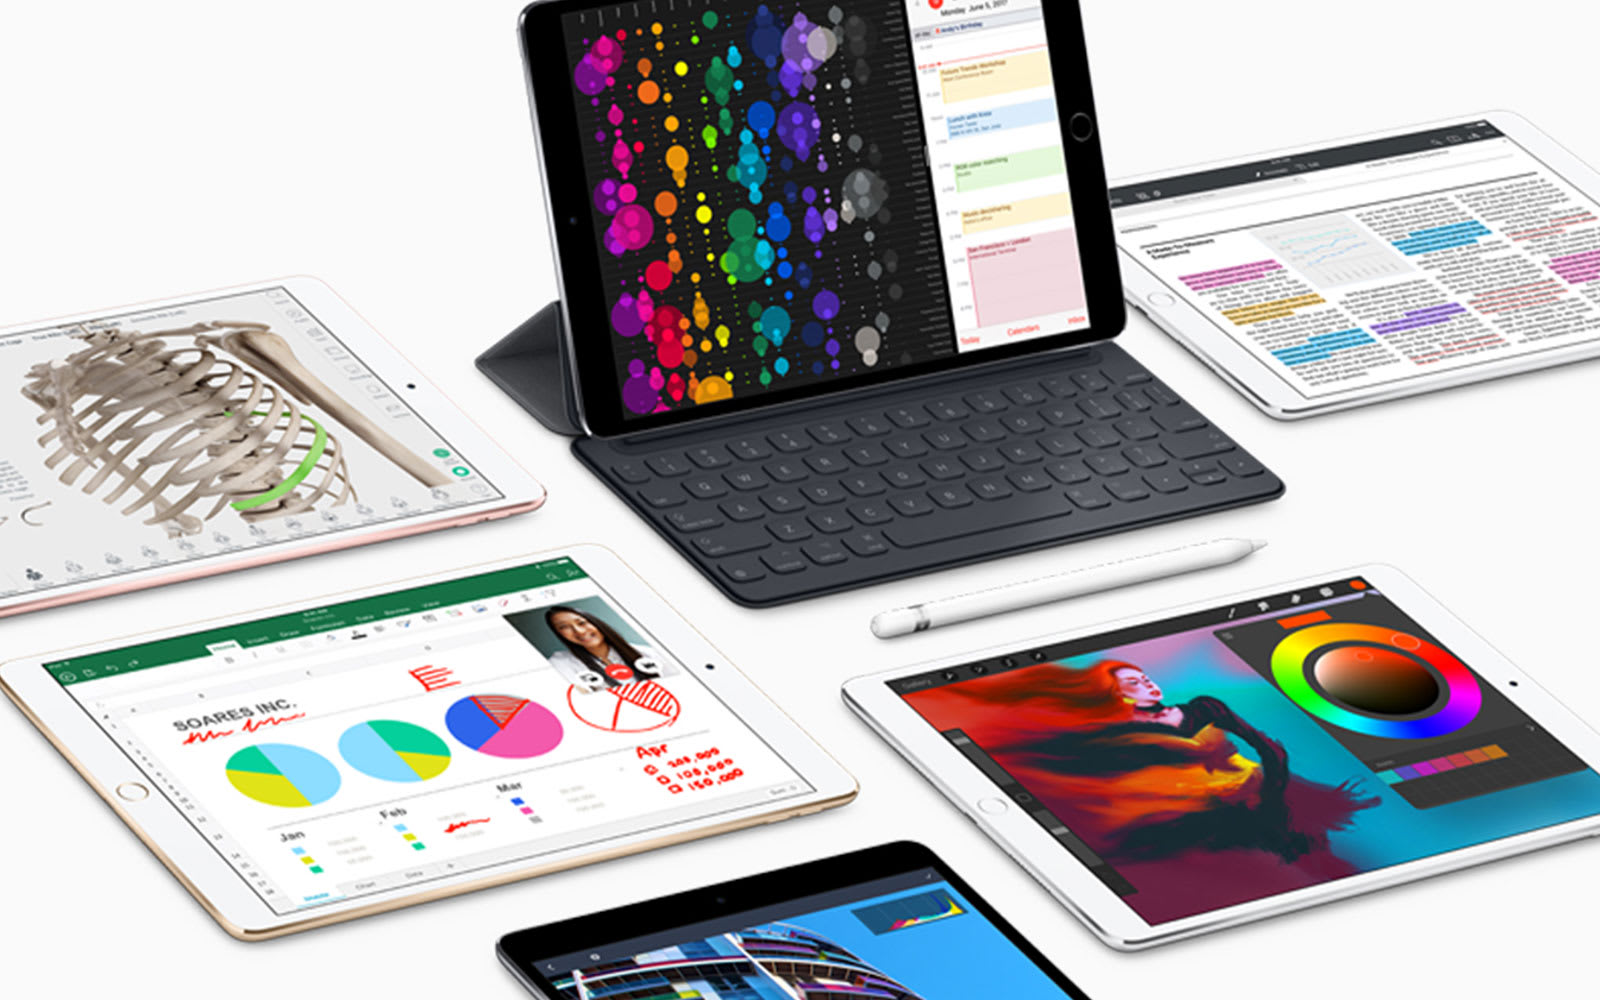 Apple's iOS 11 upgrades for the iPad are all about productivity